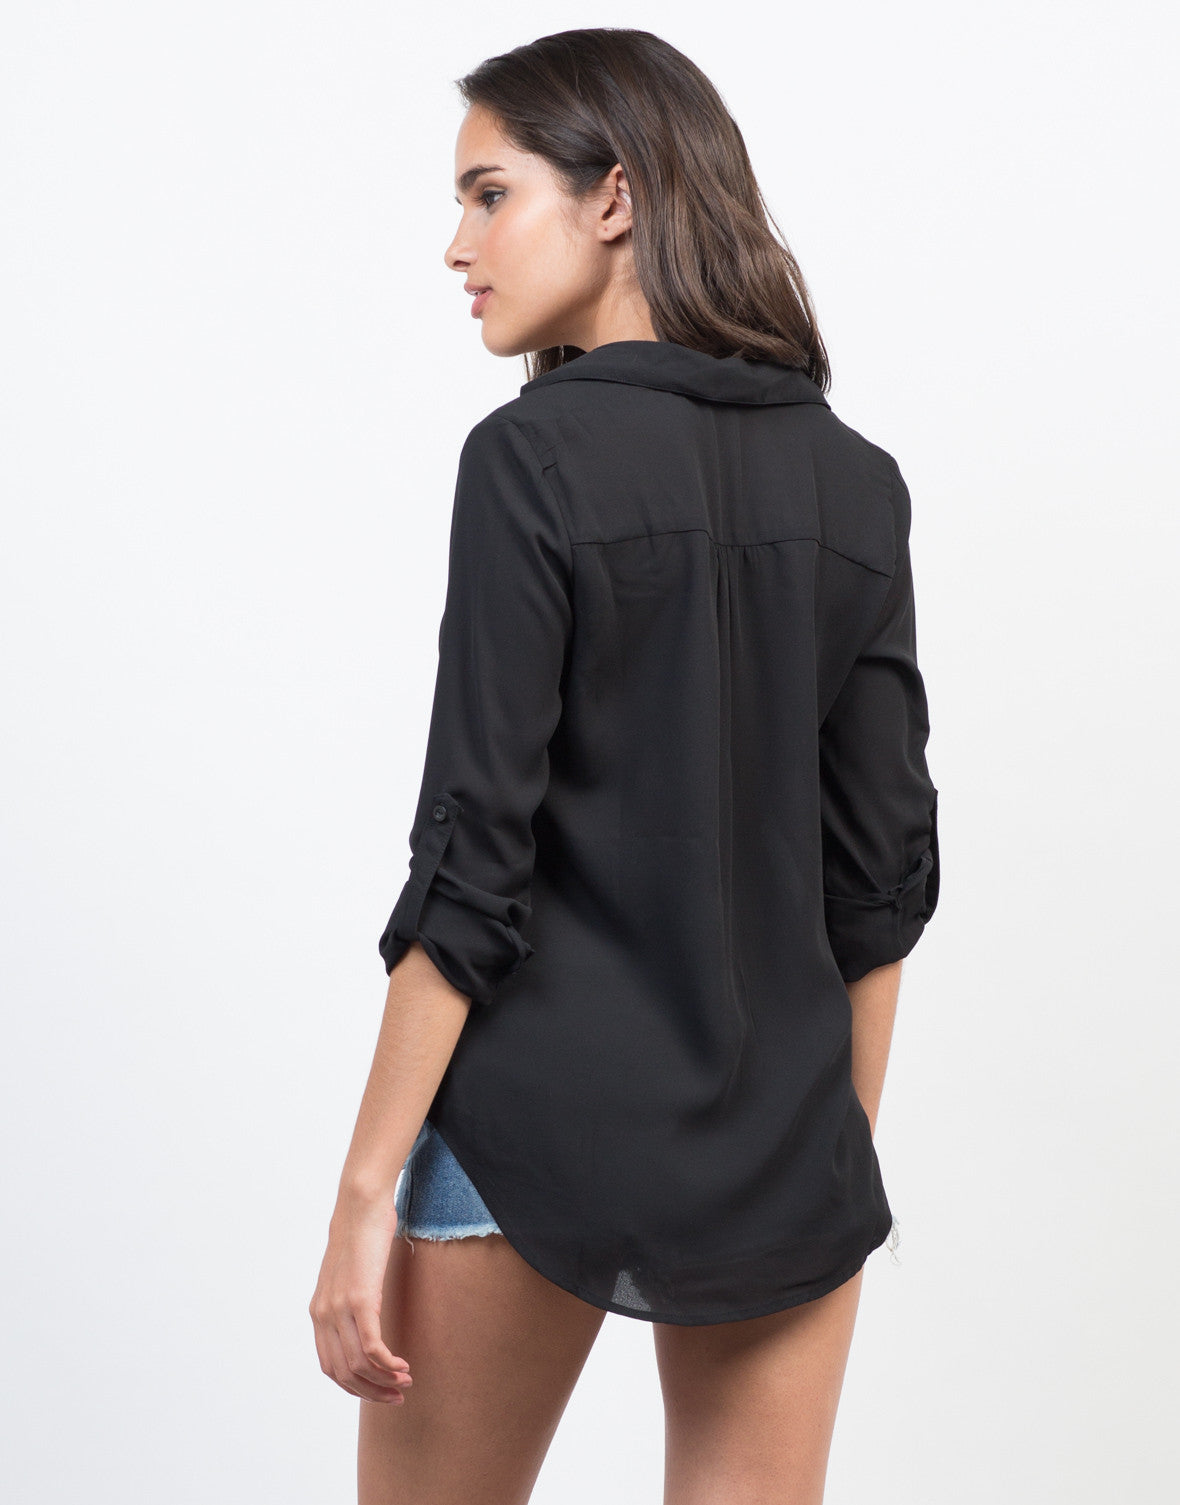 Back View of Sheer Collar Lace-Up Shirt